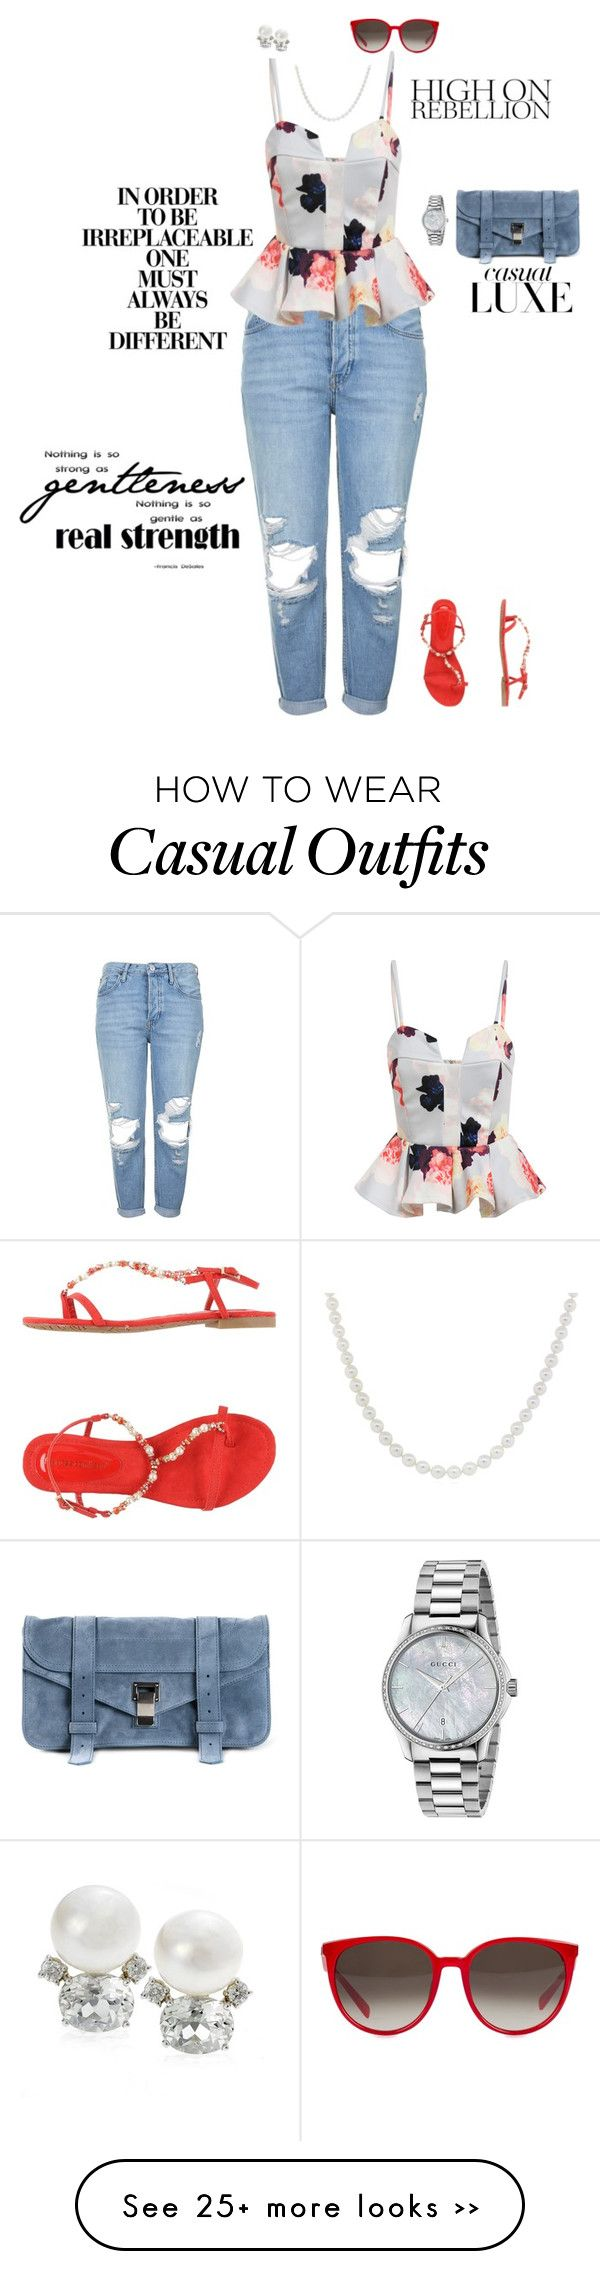 """""""Casual Chic"""" by jenily on Polyvore"""